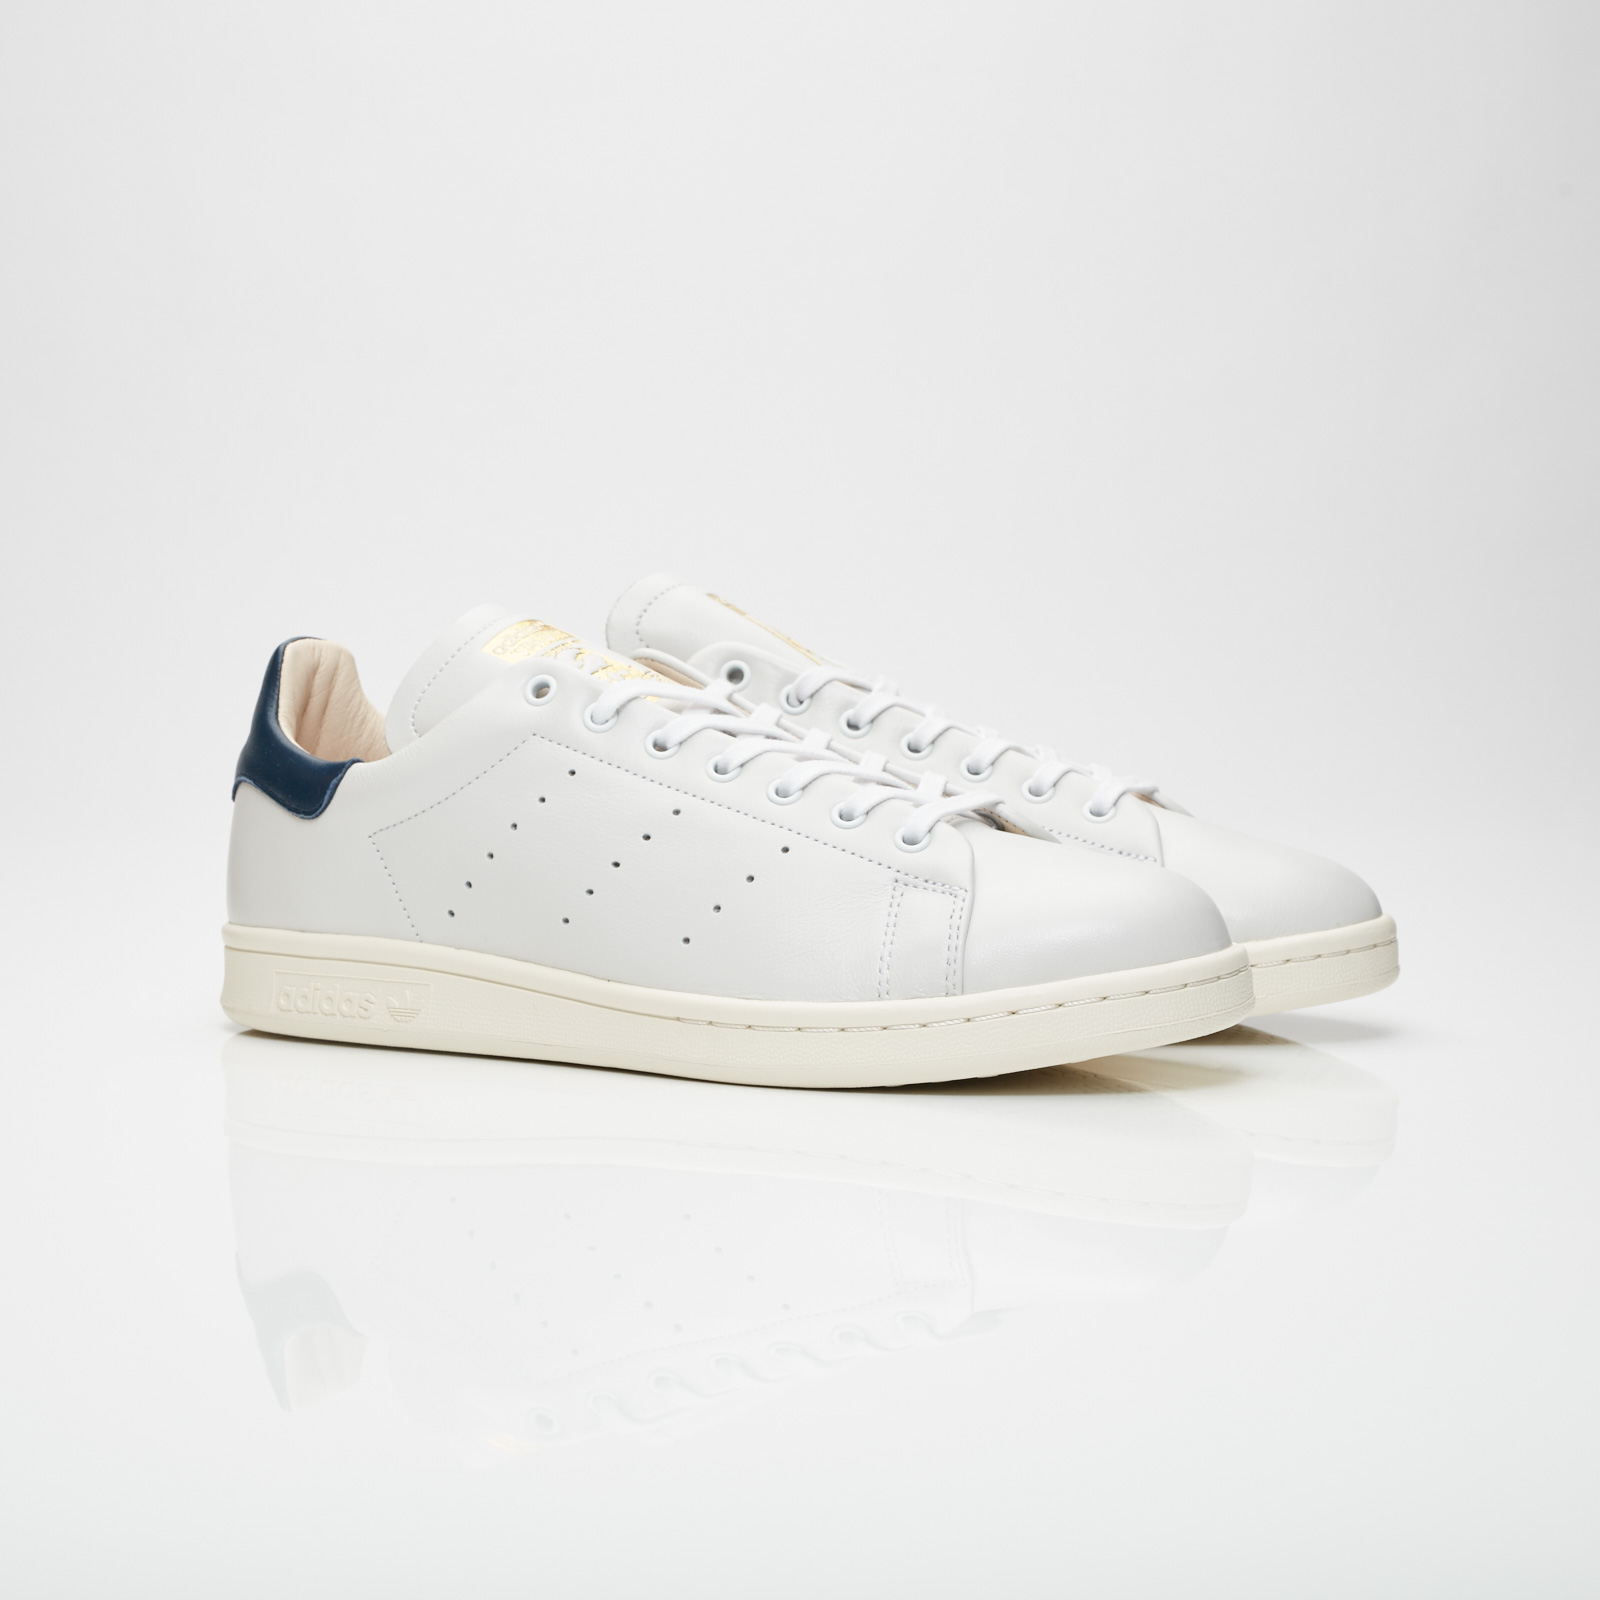 9fe4304422b adidas Stan Smith Recon - Cq3033 - Sneakersnstuff